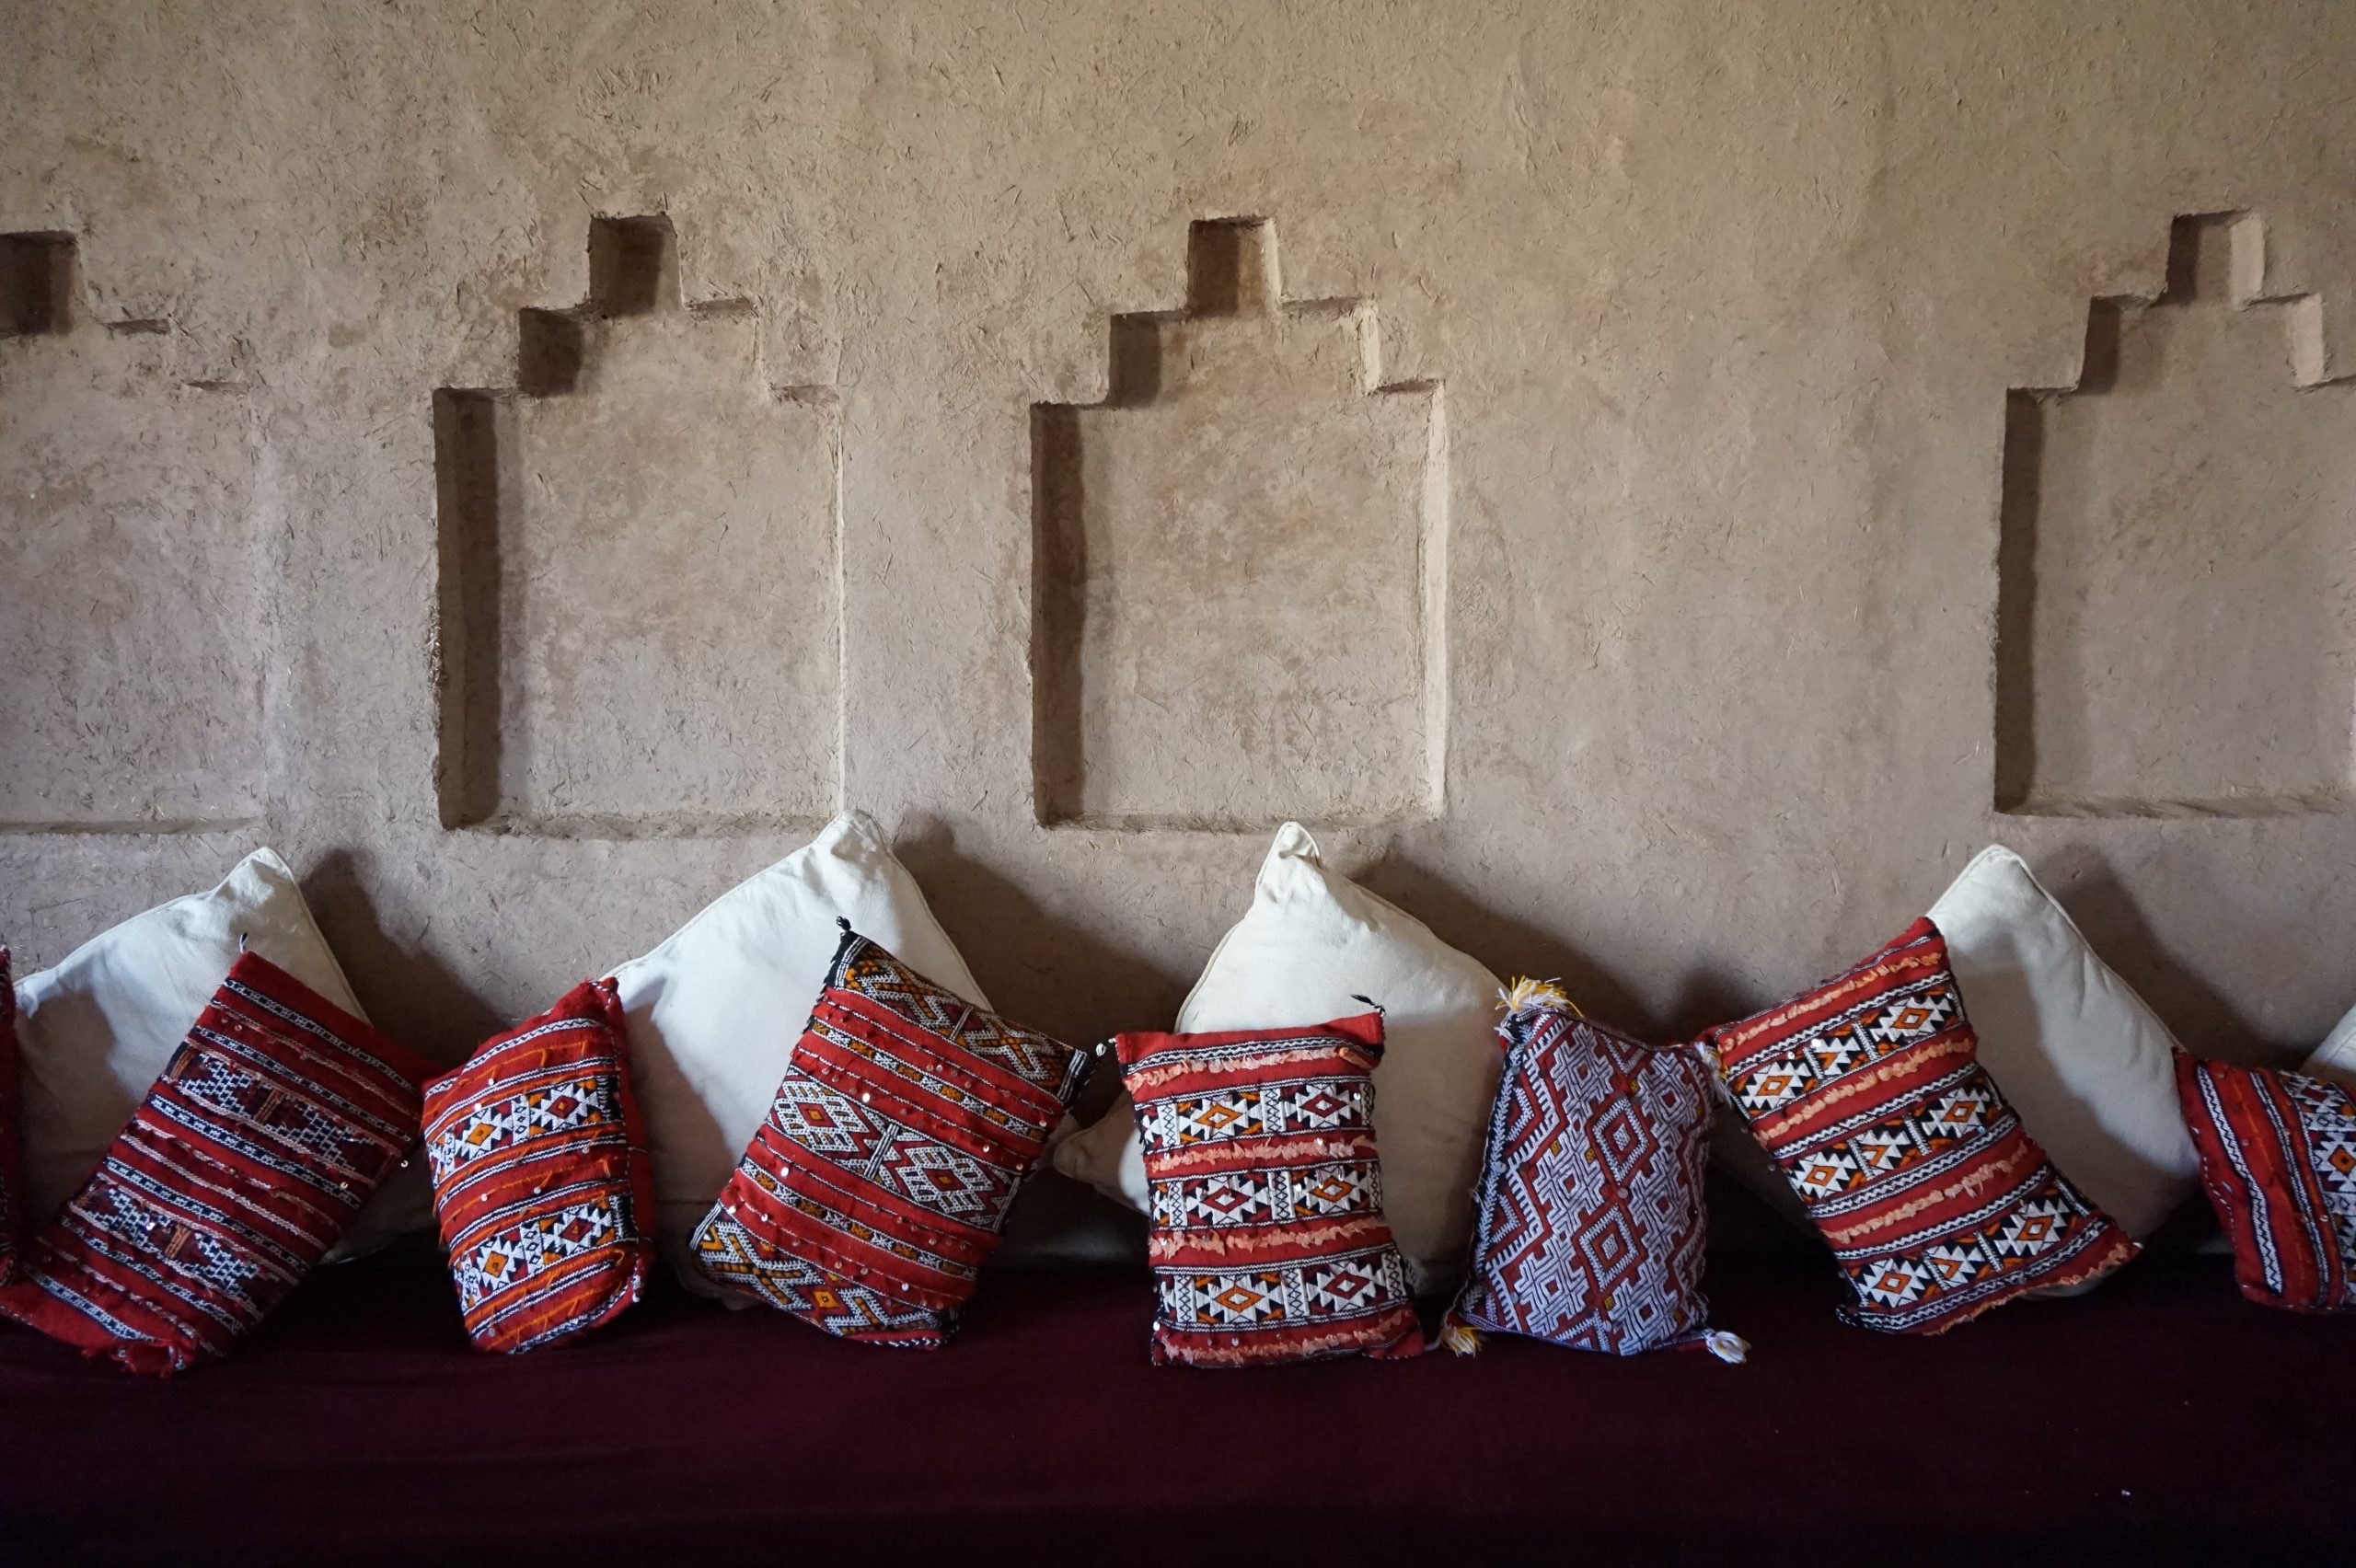 gallery image for Artistic Morocco